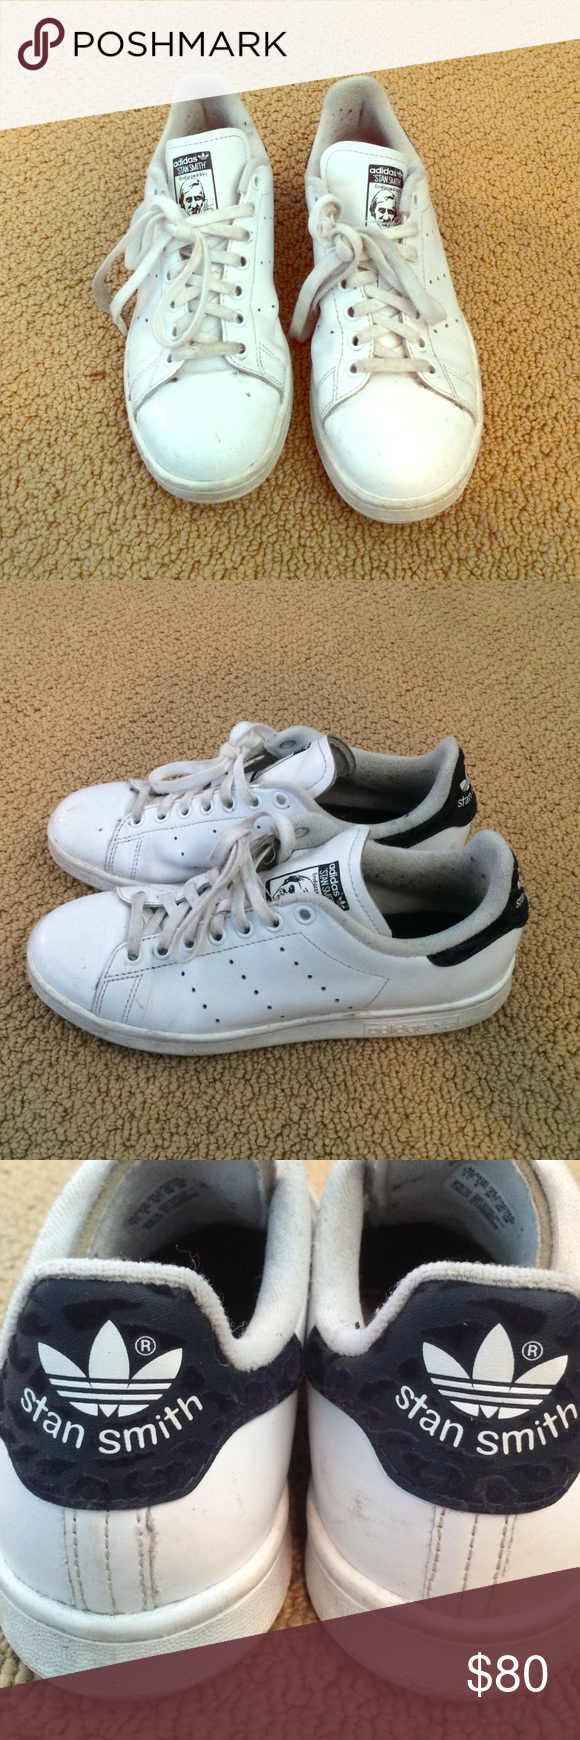 Adidas shoes White adidas Stan smith shoes, with felt